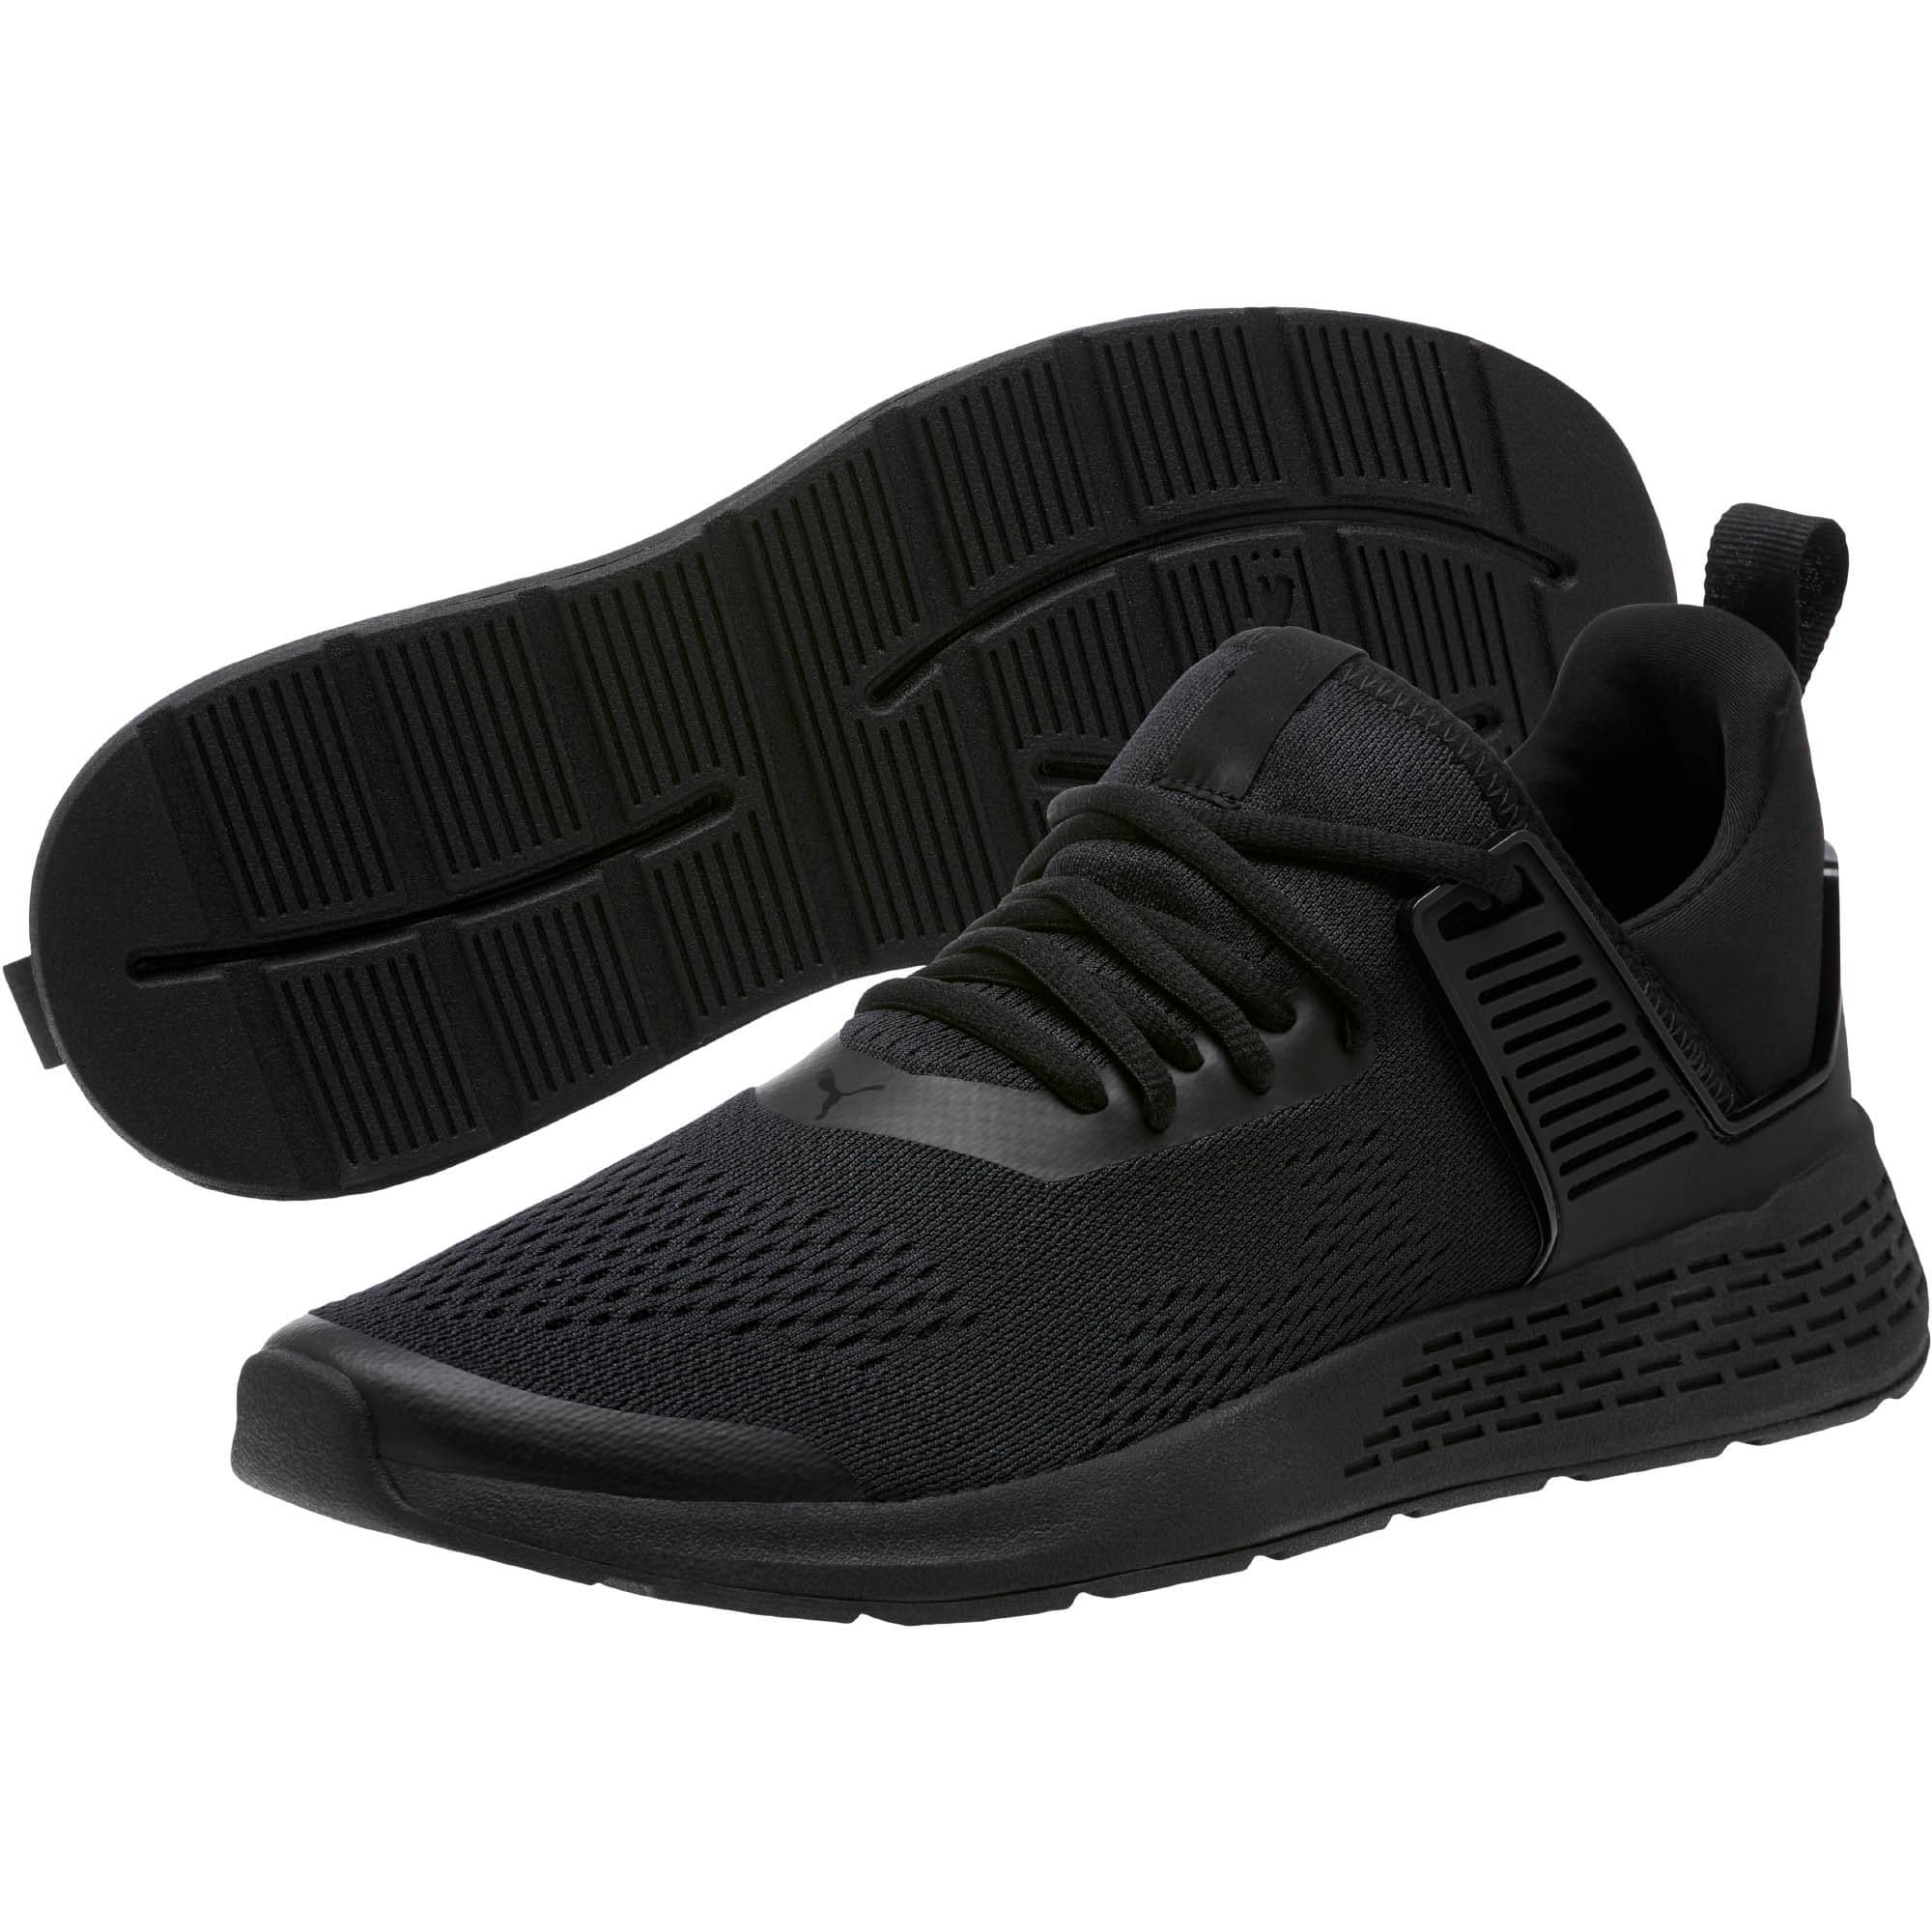 Thumbnail 2 of Insurge Eng Mesh Sneakers, Black-Black-Black, medium